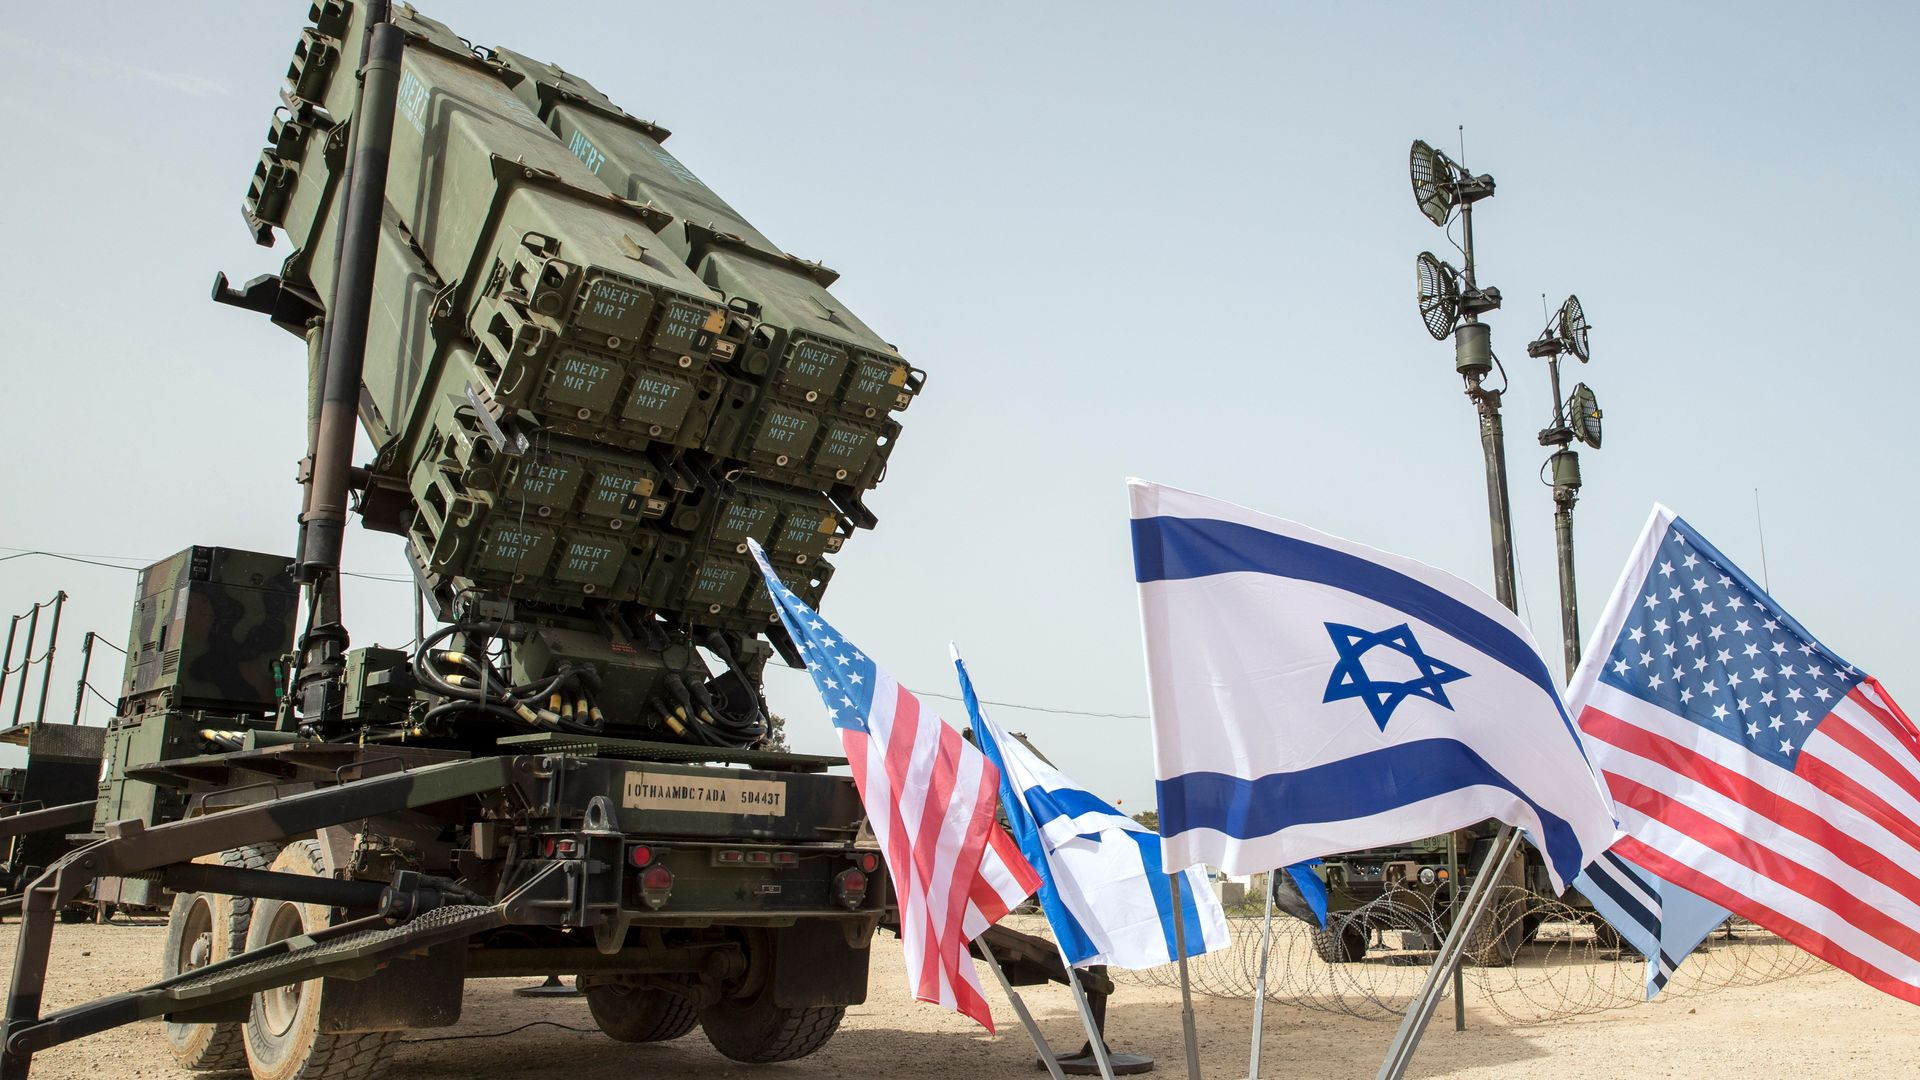 A US Patriot missile defense system during a joint Israeli-US military exercise